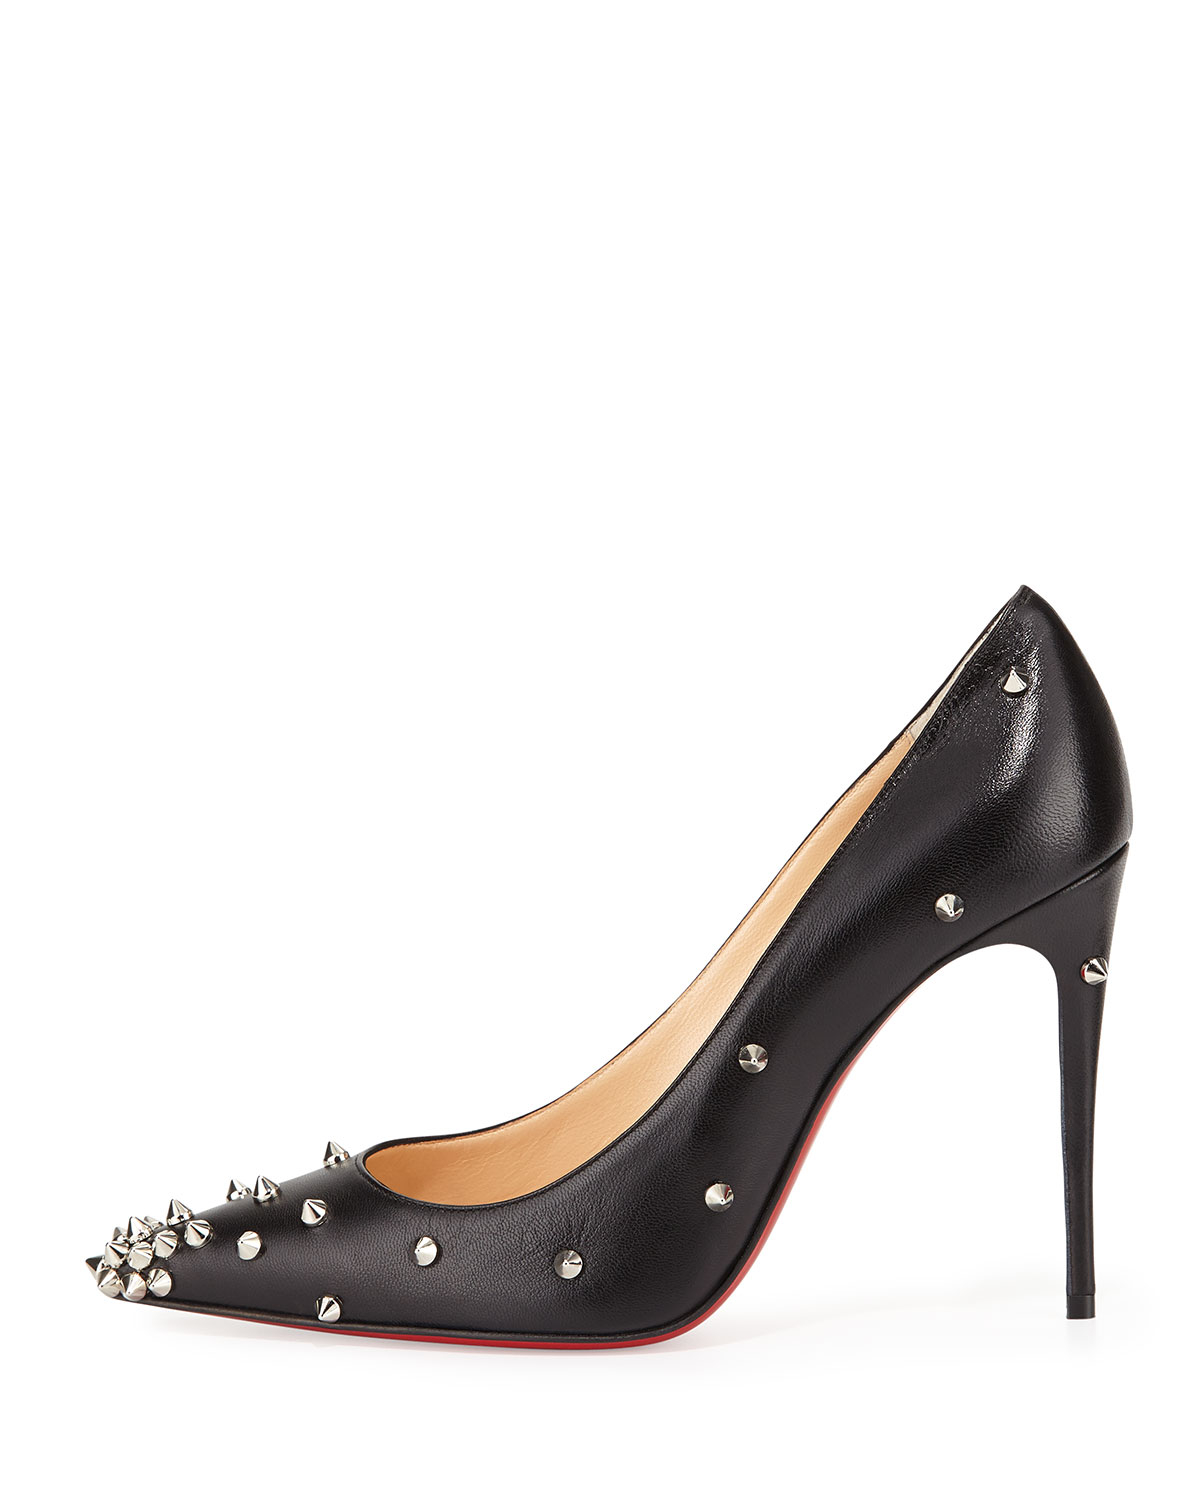 Christian louboutin Degraspike Studded Leather Red Sole Pump in ...